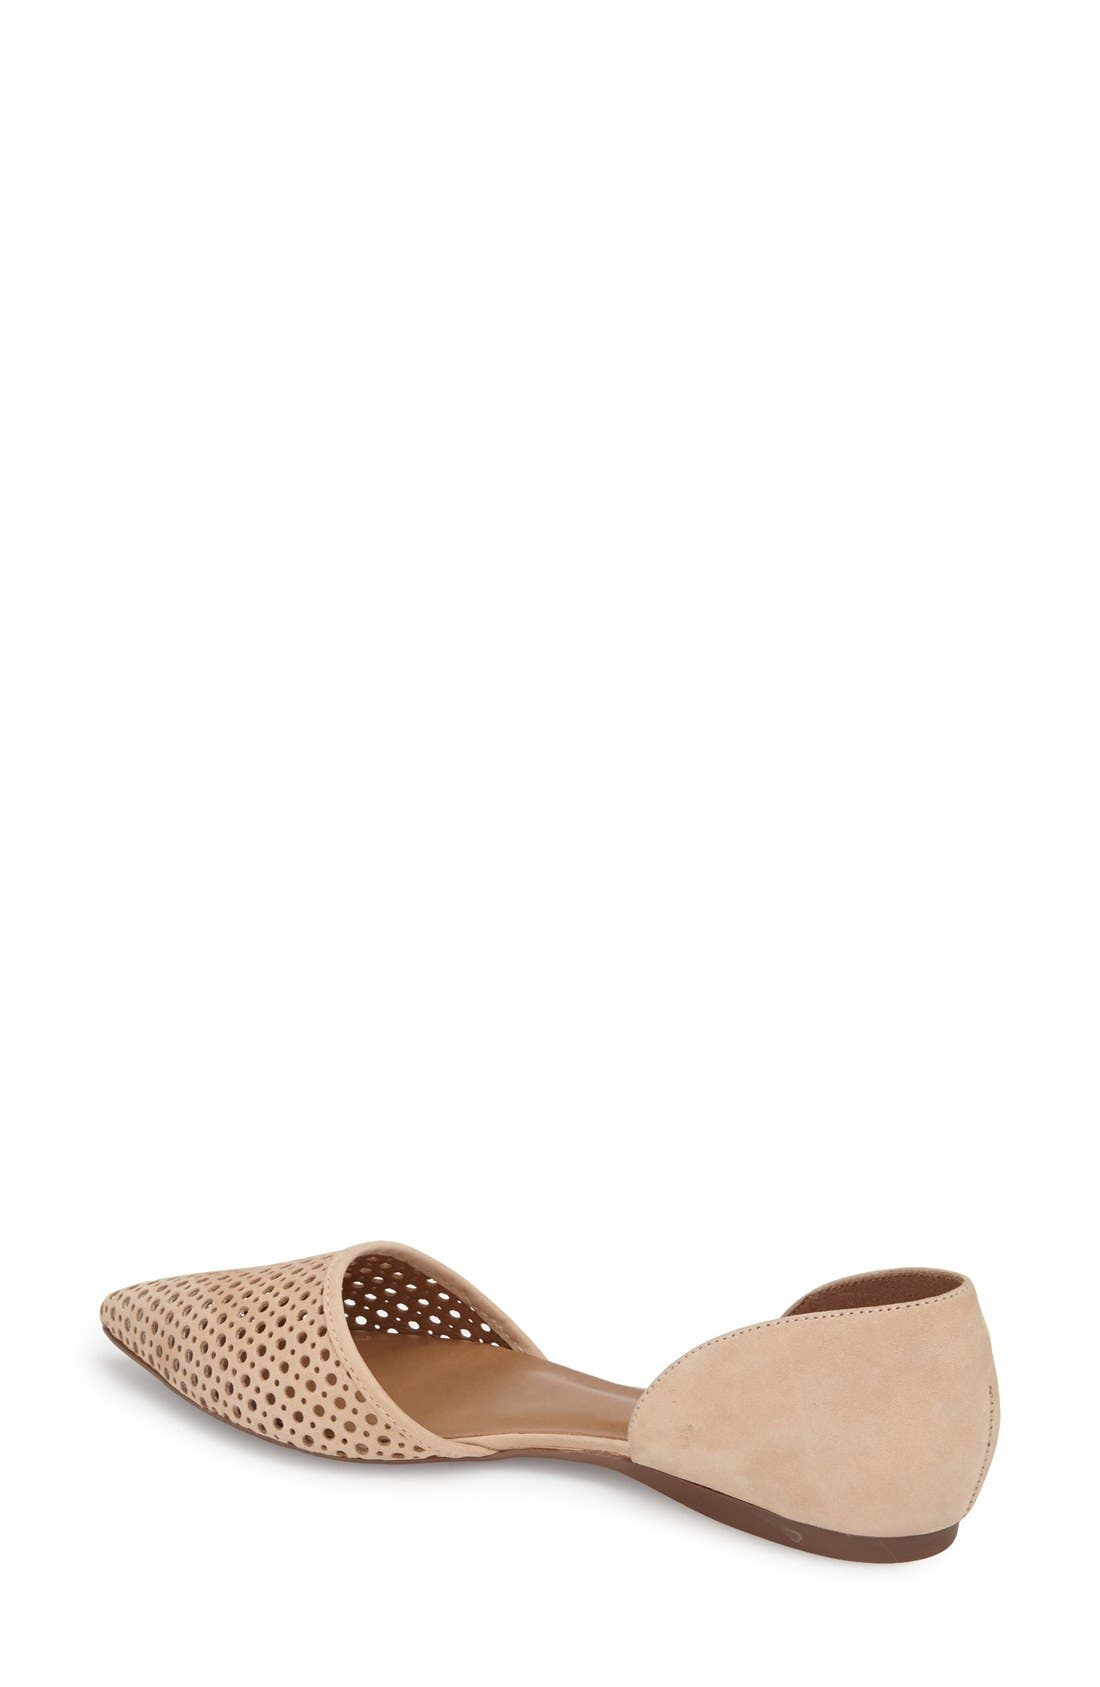 Alternate Image 2  - French Sole 'Quotient' d'Orsay Flat (Women)